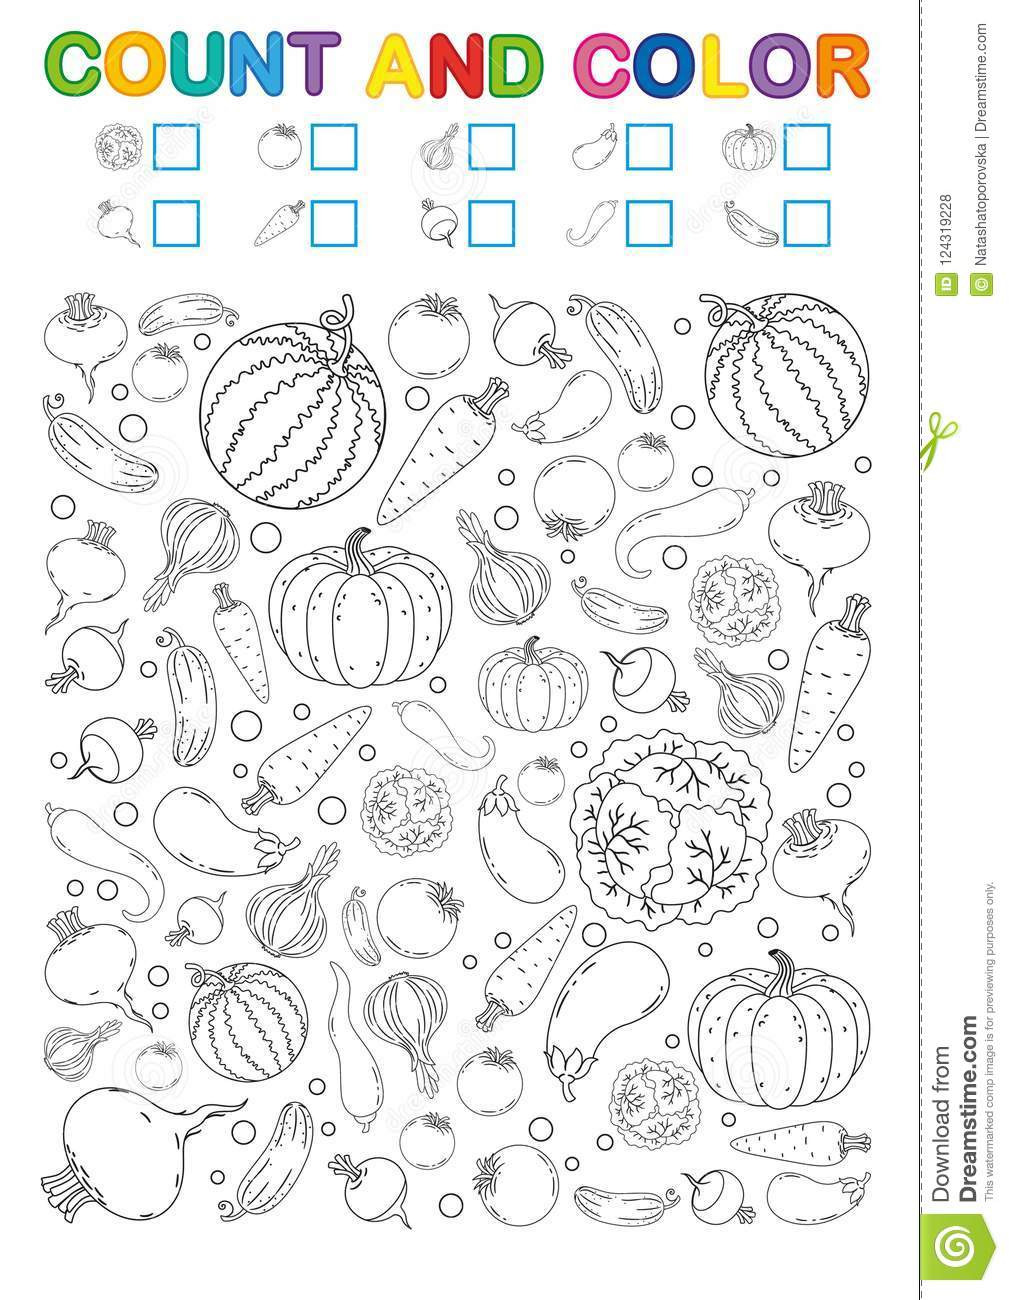 Vegetables Worksheets for Kindergarten Coloring Book Page Count and Color Printable Worksheet for